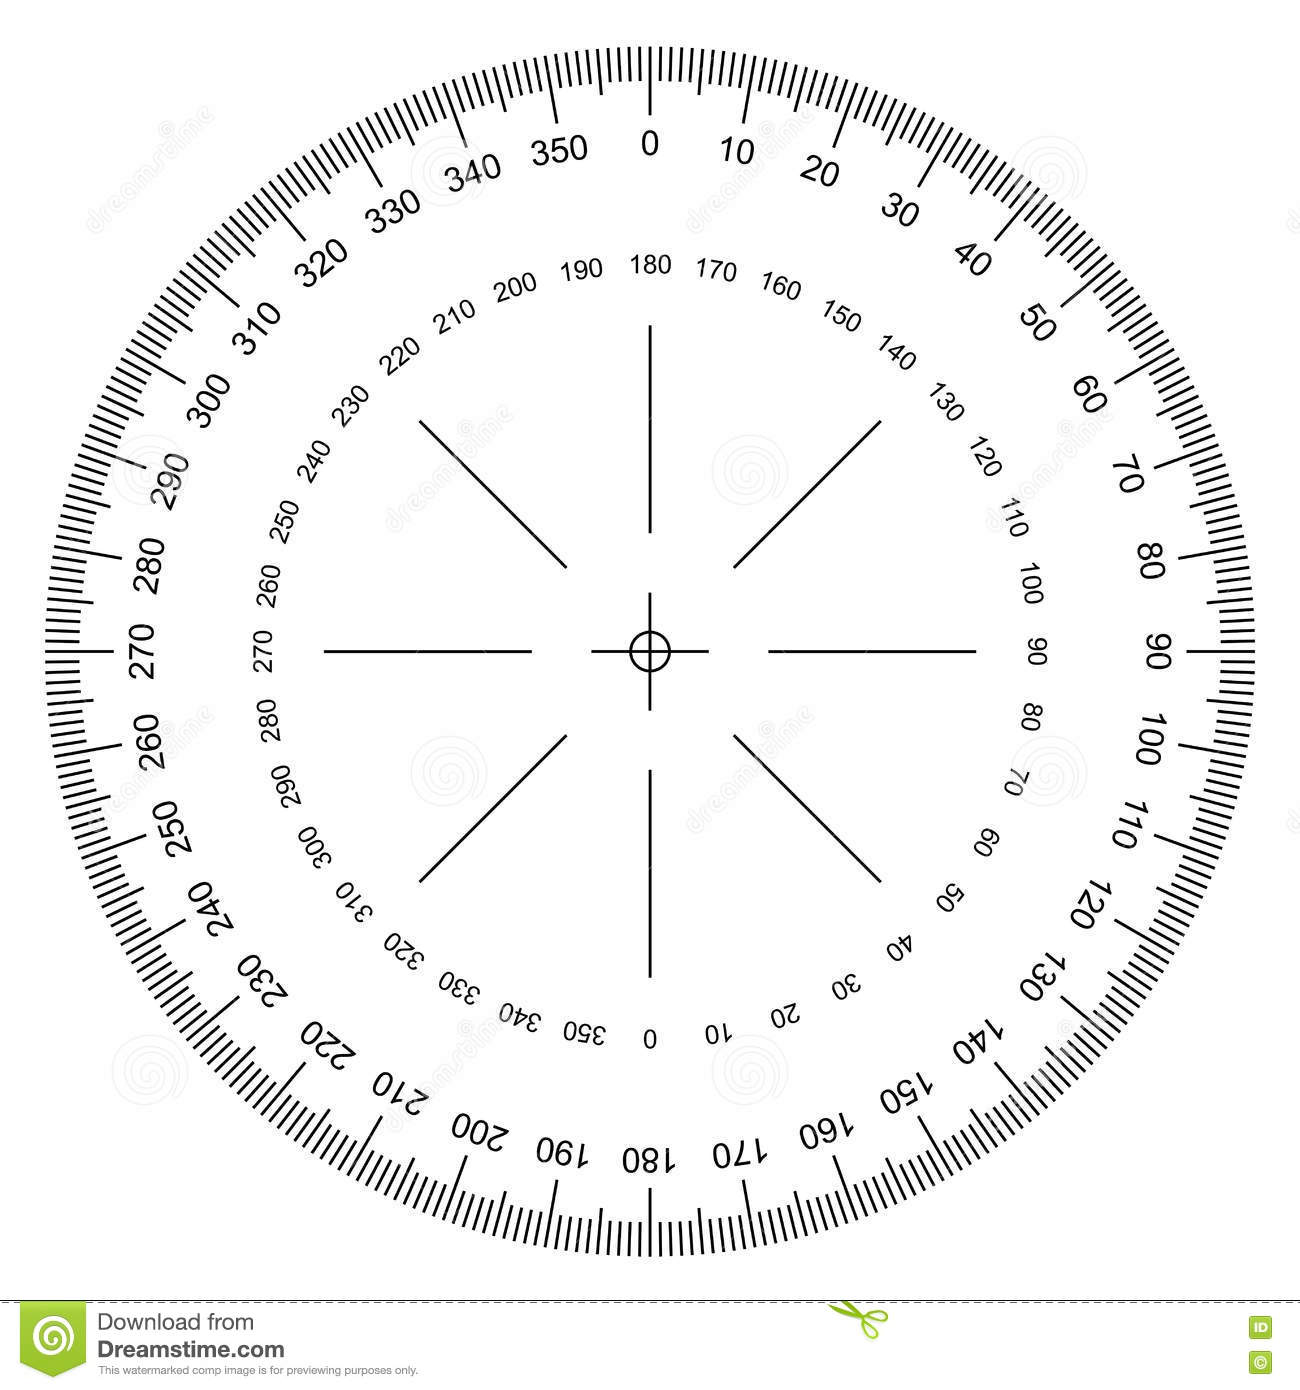 Unusual 1 Inch Button Template Tall 10 Best Resume Samples Shaped 2 Page Resume Page Break 2 Page Resume Template Download Old 2 Week Notice Template Bright2.25 Button Template Transparent Protractor Stock Illustrations \u2013 116 Transparent ..